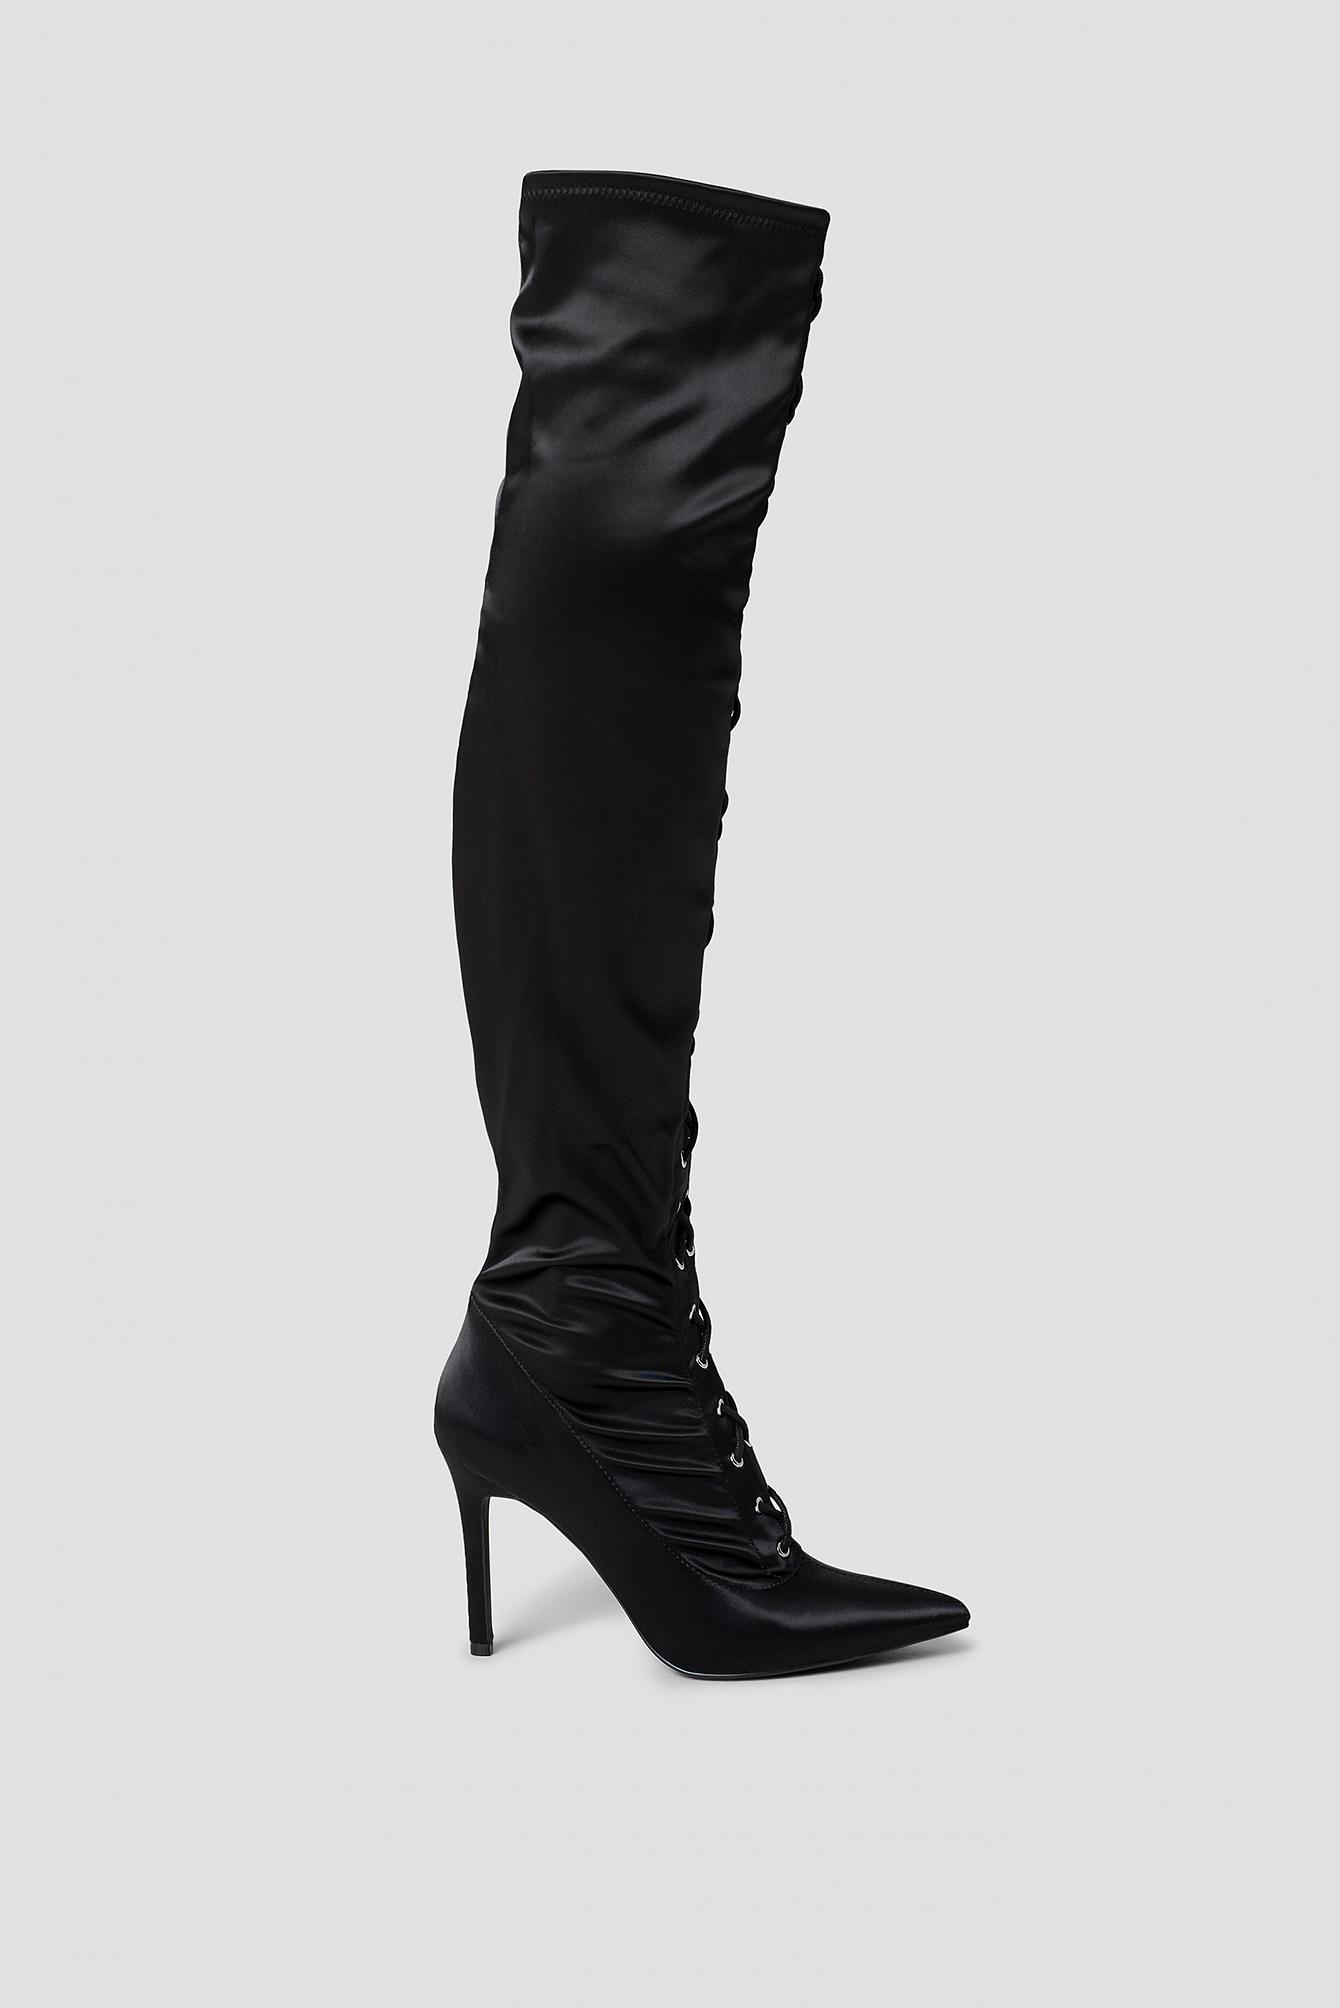 new concept 9f3a8 8498c NA-KD. Women s Lace Up Satin Overknee Boots Black